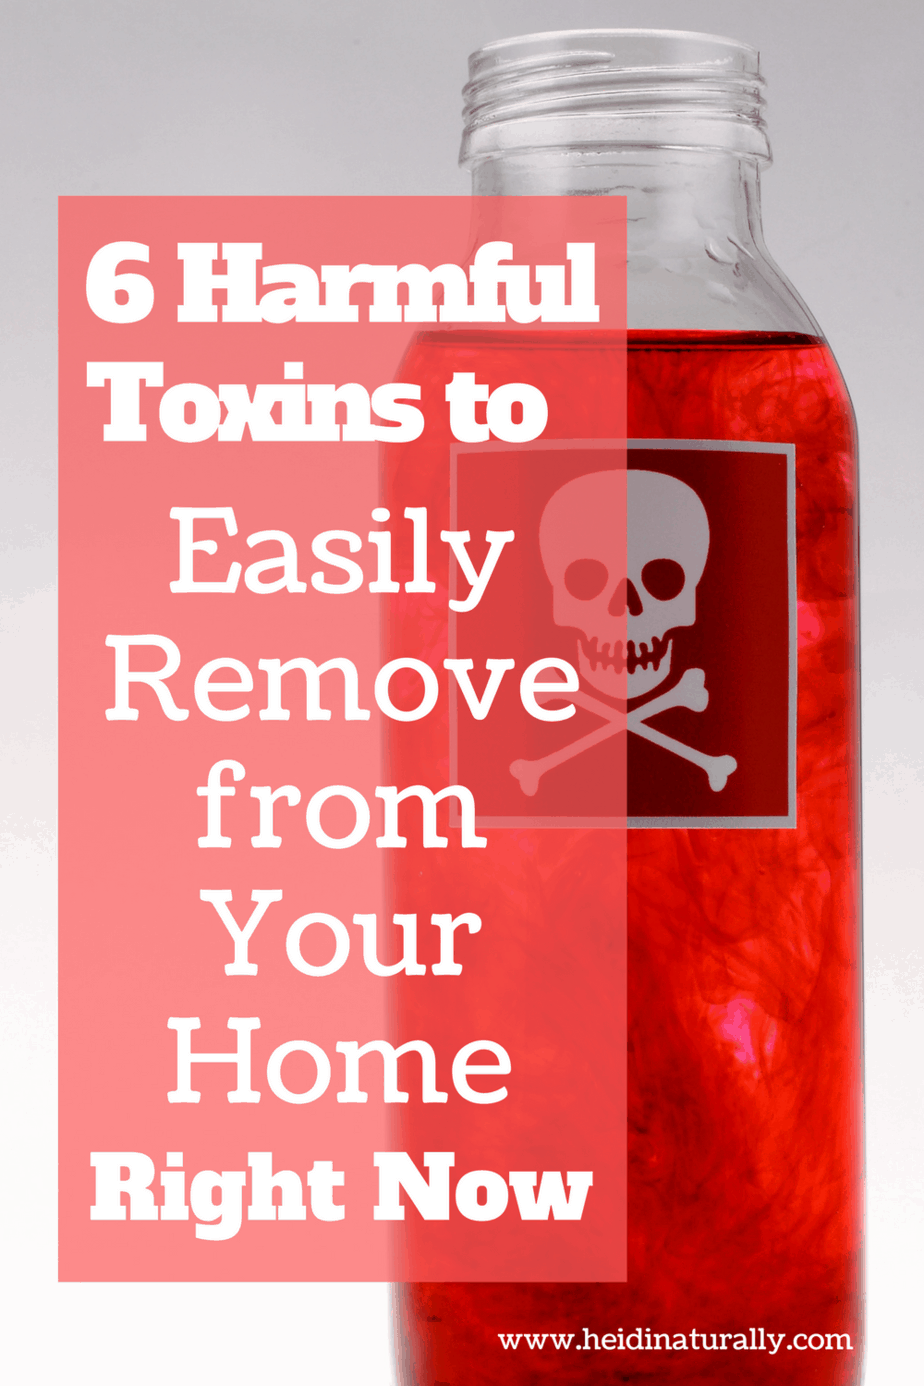 Find out the 6 harmful toxins that are easy to remove and swap out for healthier alternatives. Learn what to use instead and protect your family.